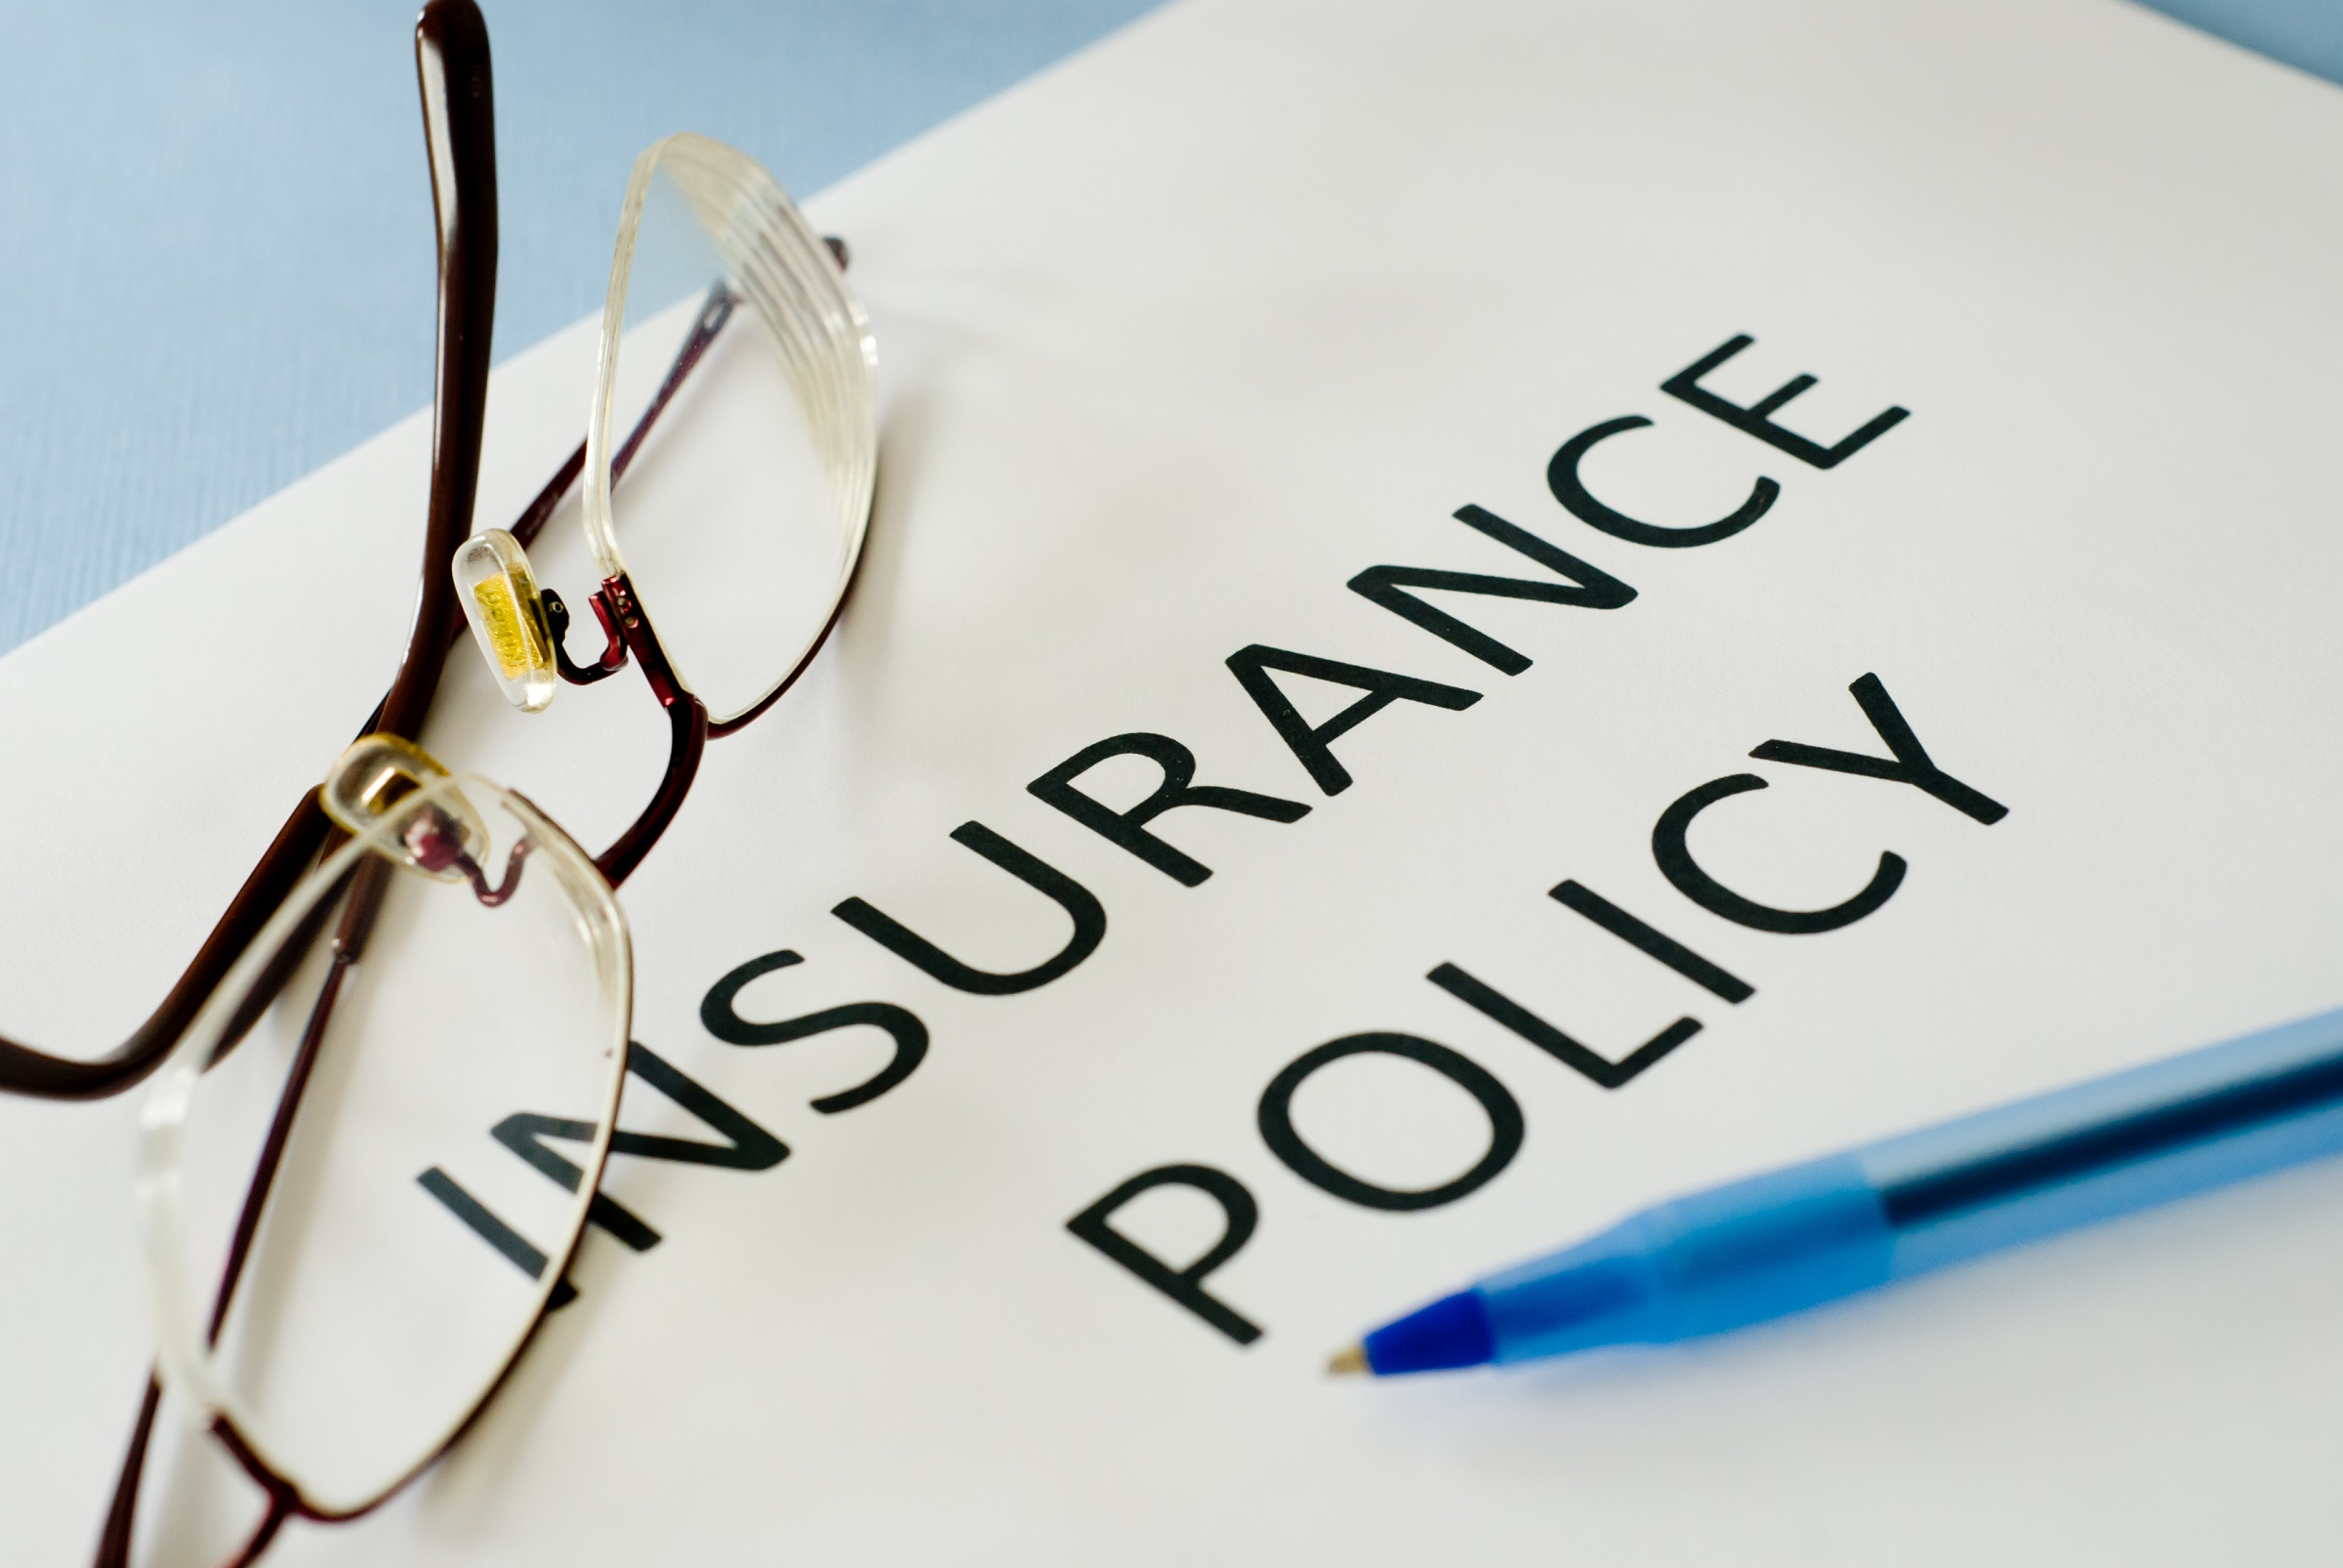 College students need renter's insurance